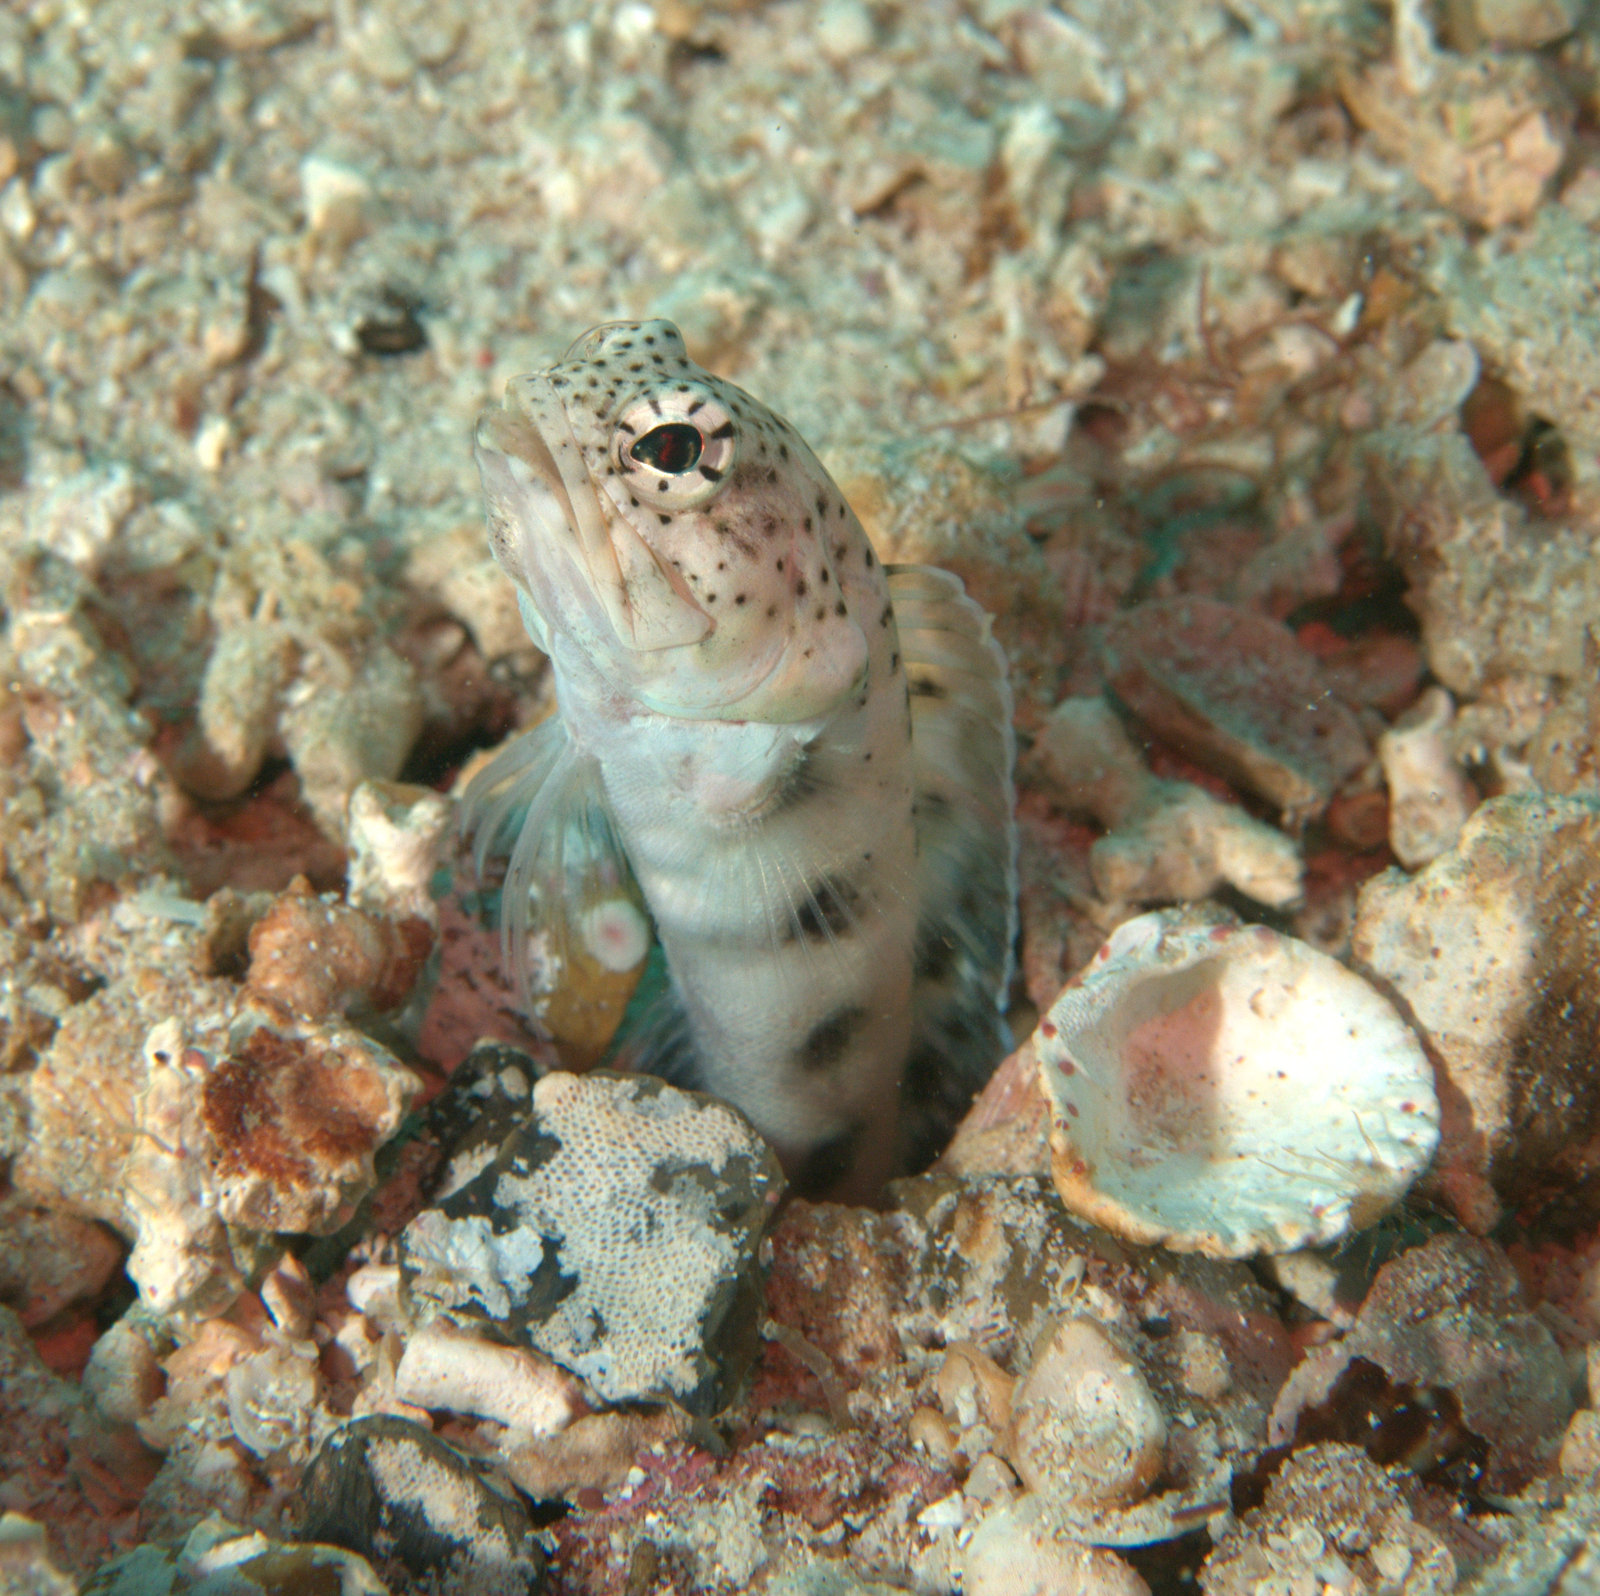 under pressure world: Finespotted Jawfish- Sea of Cortez, MX